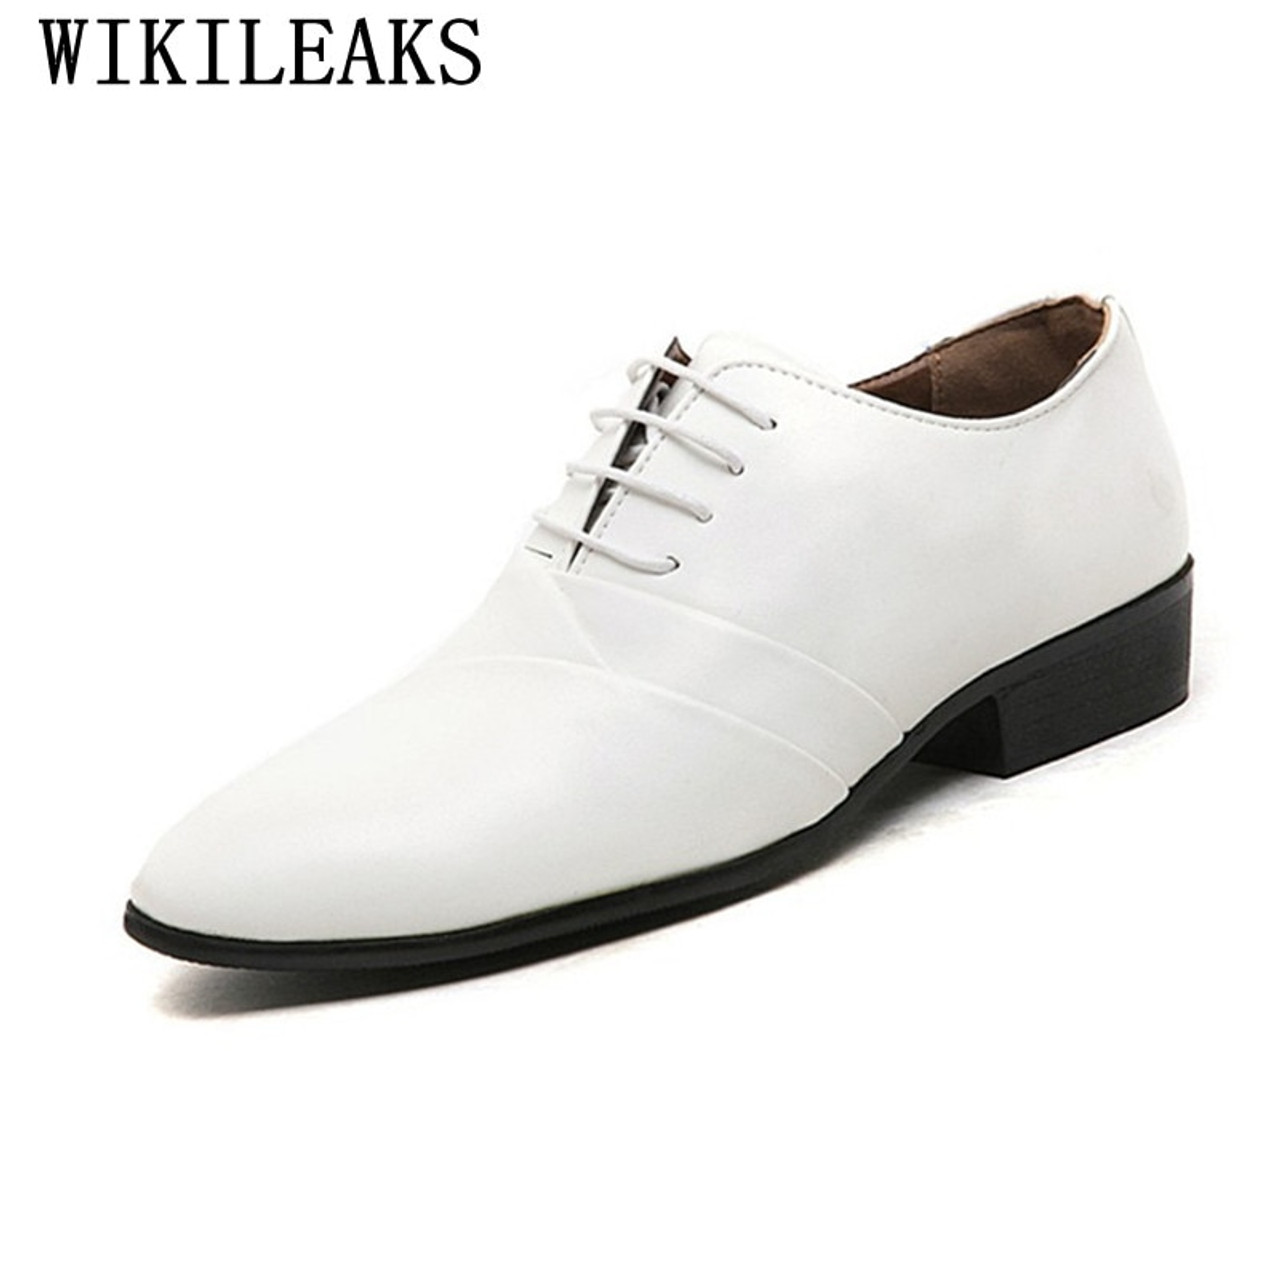 1c7c043d15 2018 designer wedding shoes man leather white oxford shoes for men formal  mariage mens pointed toe dress shoes sapatos masculino